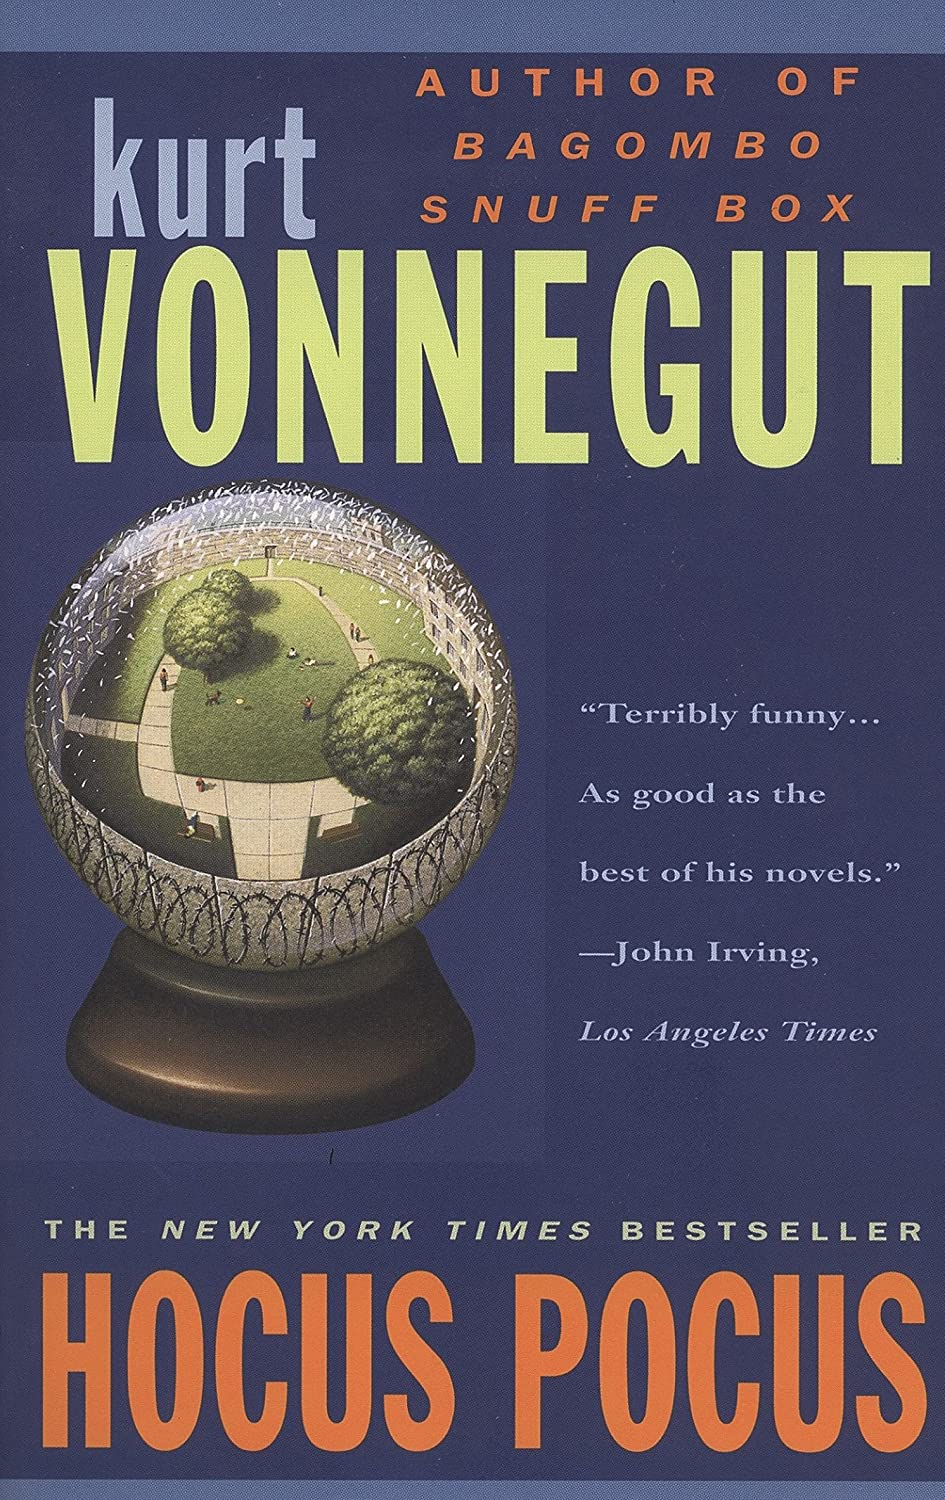 the vonnegut review player piano the one dimensional society kurt vonnegut as ragpicker and poet